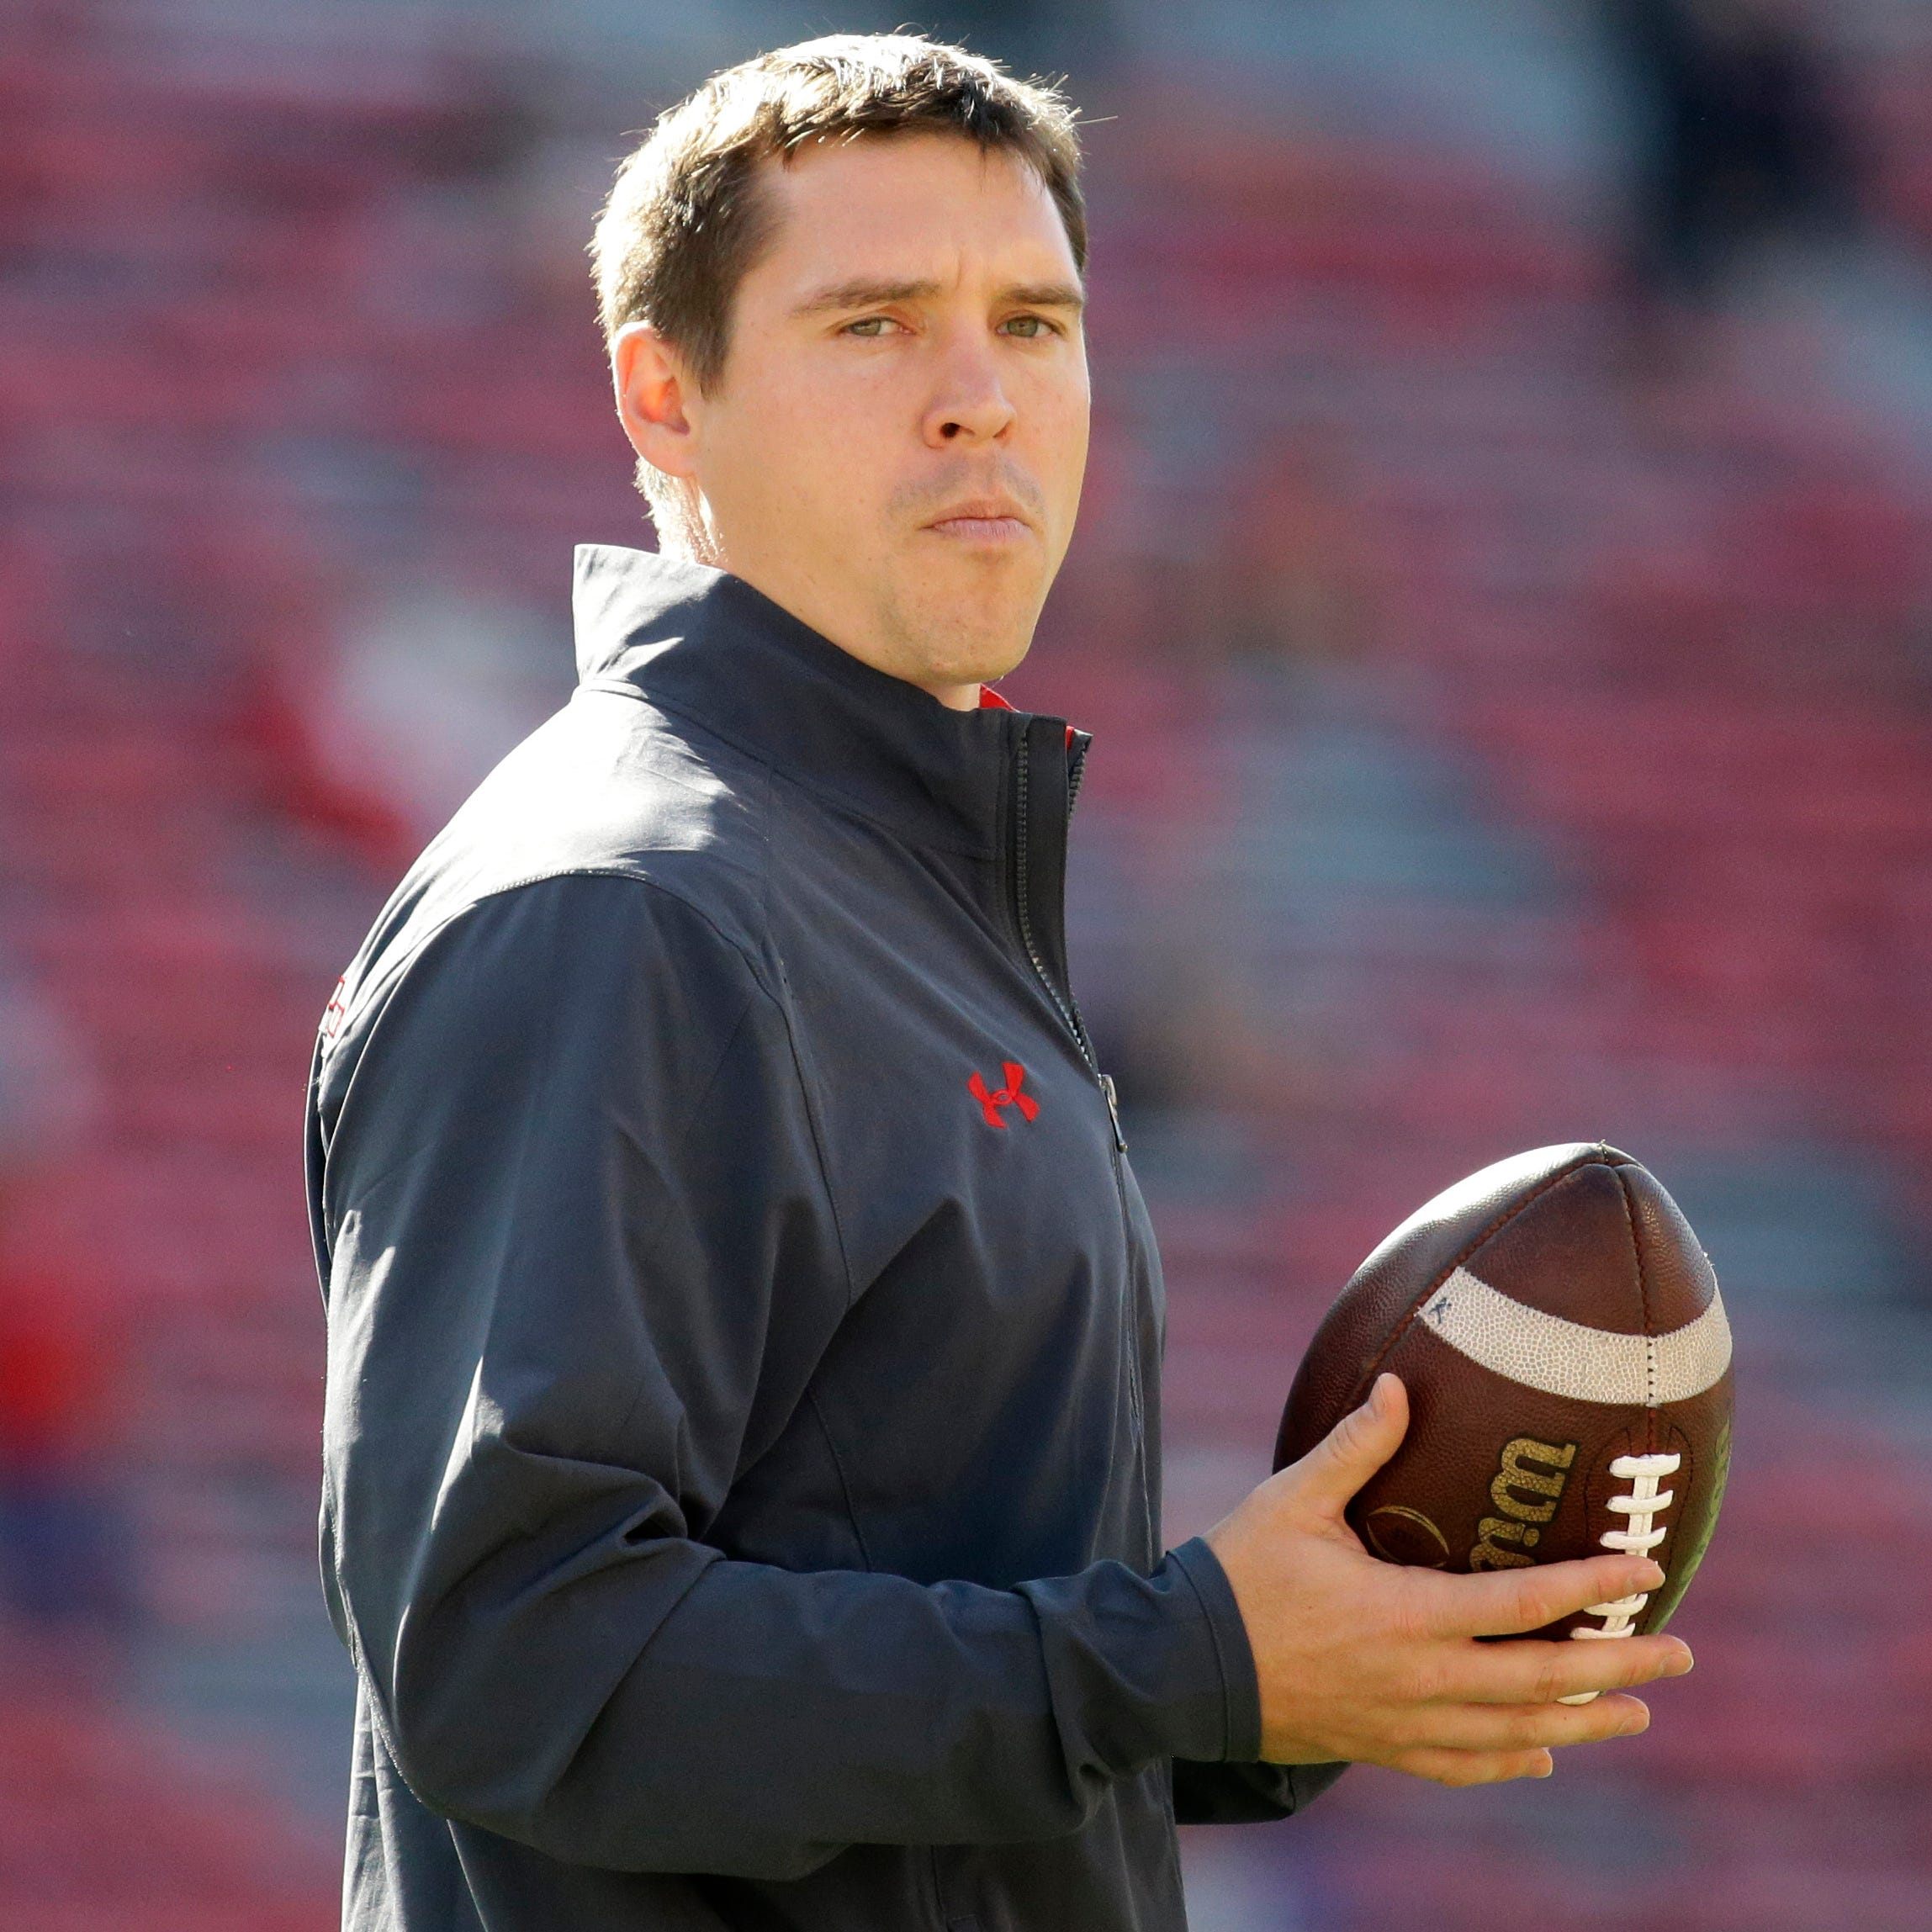 Led by coordinators Jim Leonhard and Joe Rudolph, the UW staff is  a formidable team